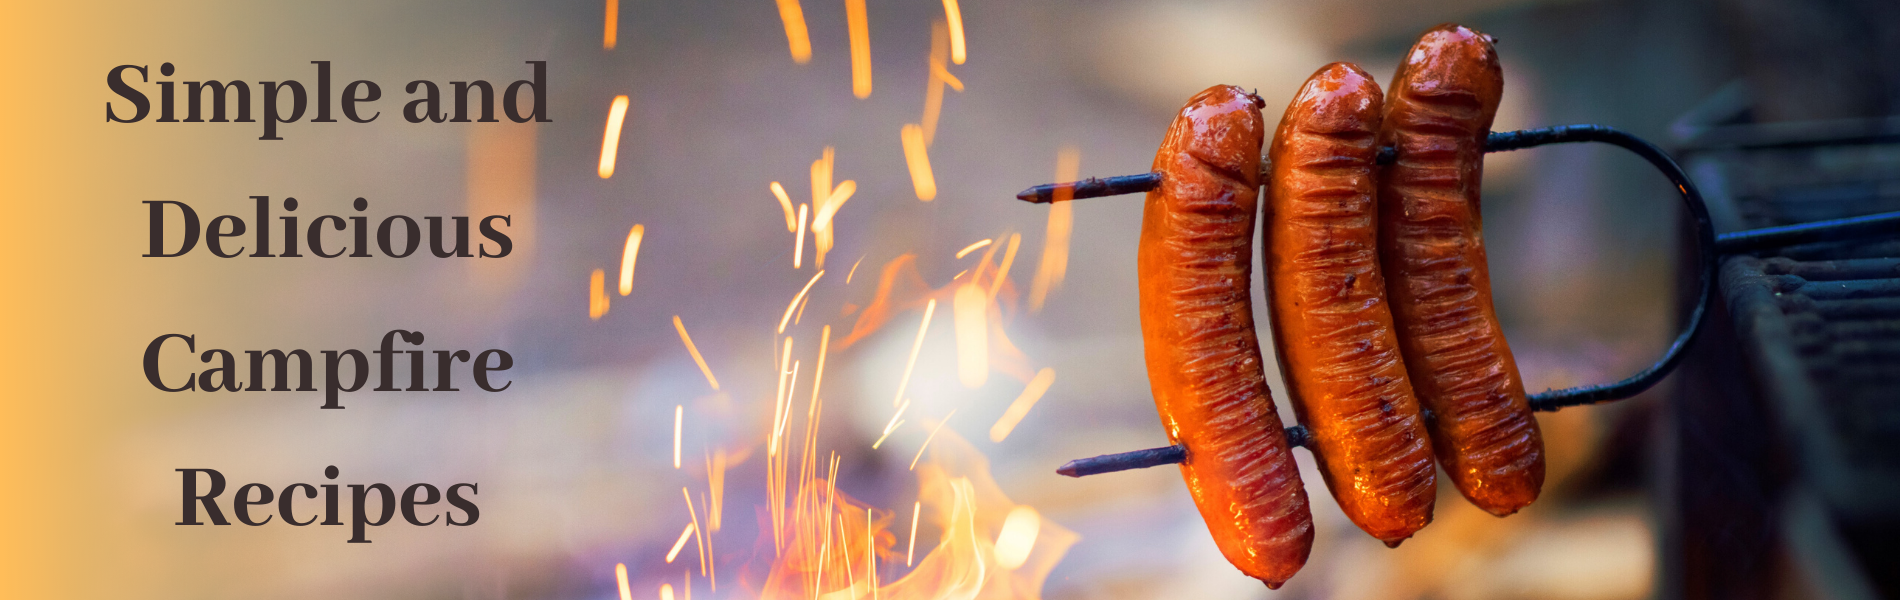 Simple and Delicious Campfire Recipes